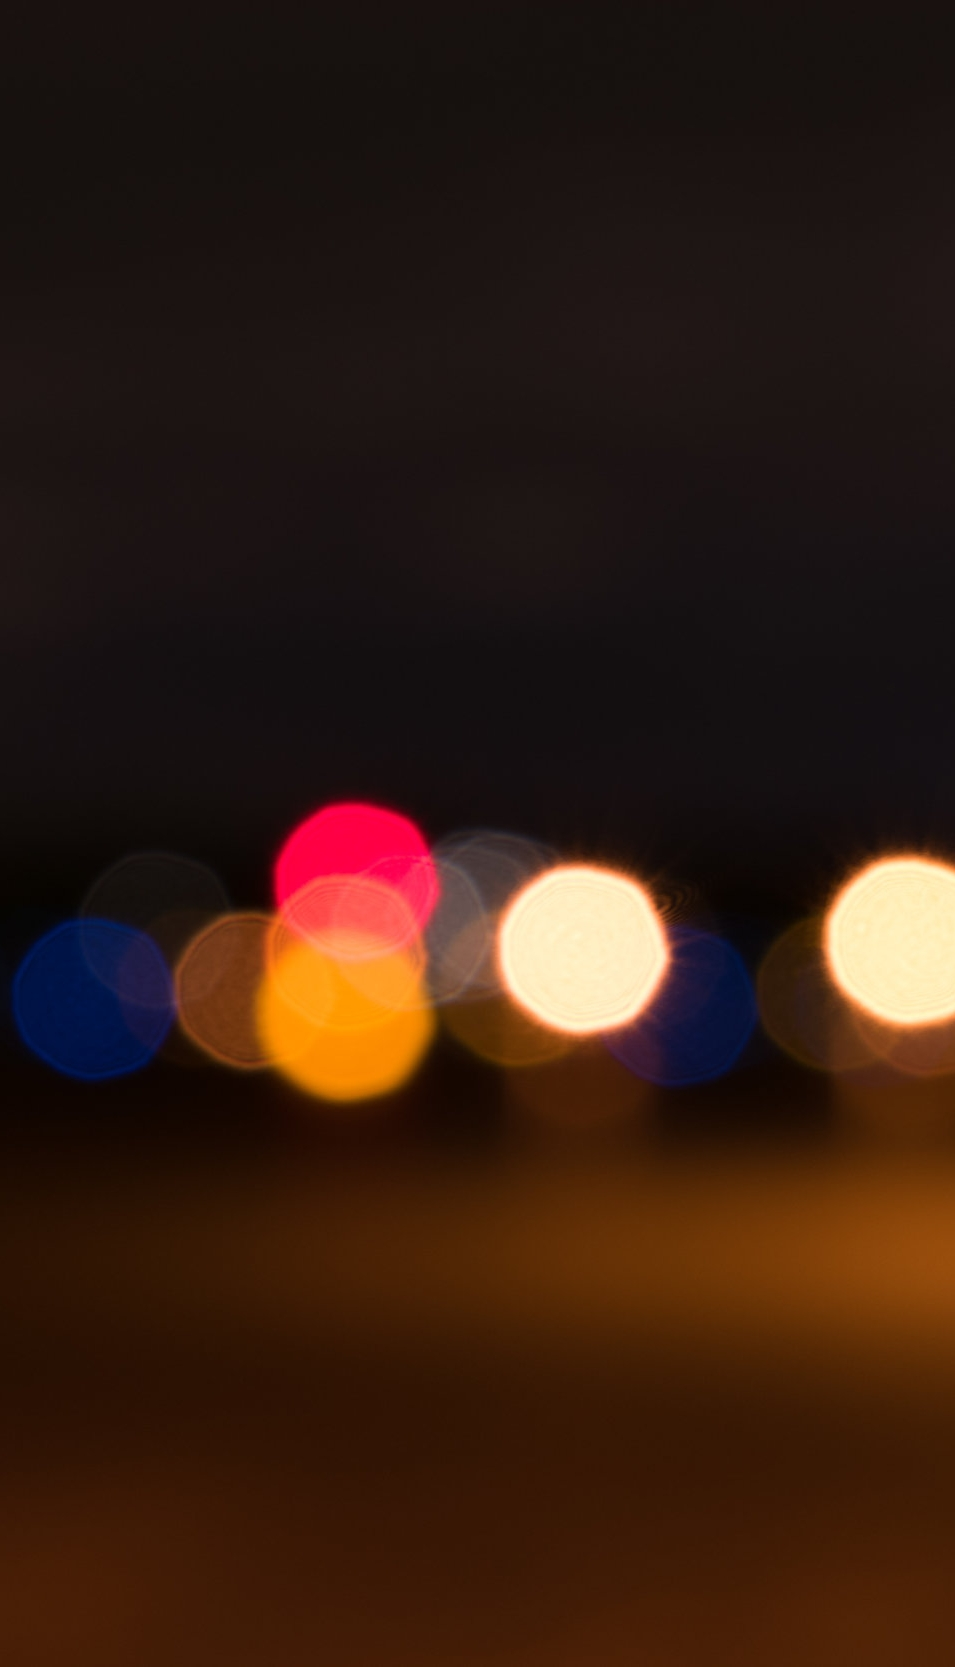 blurry lights.jpg